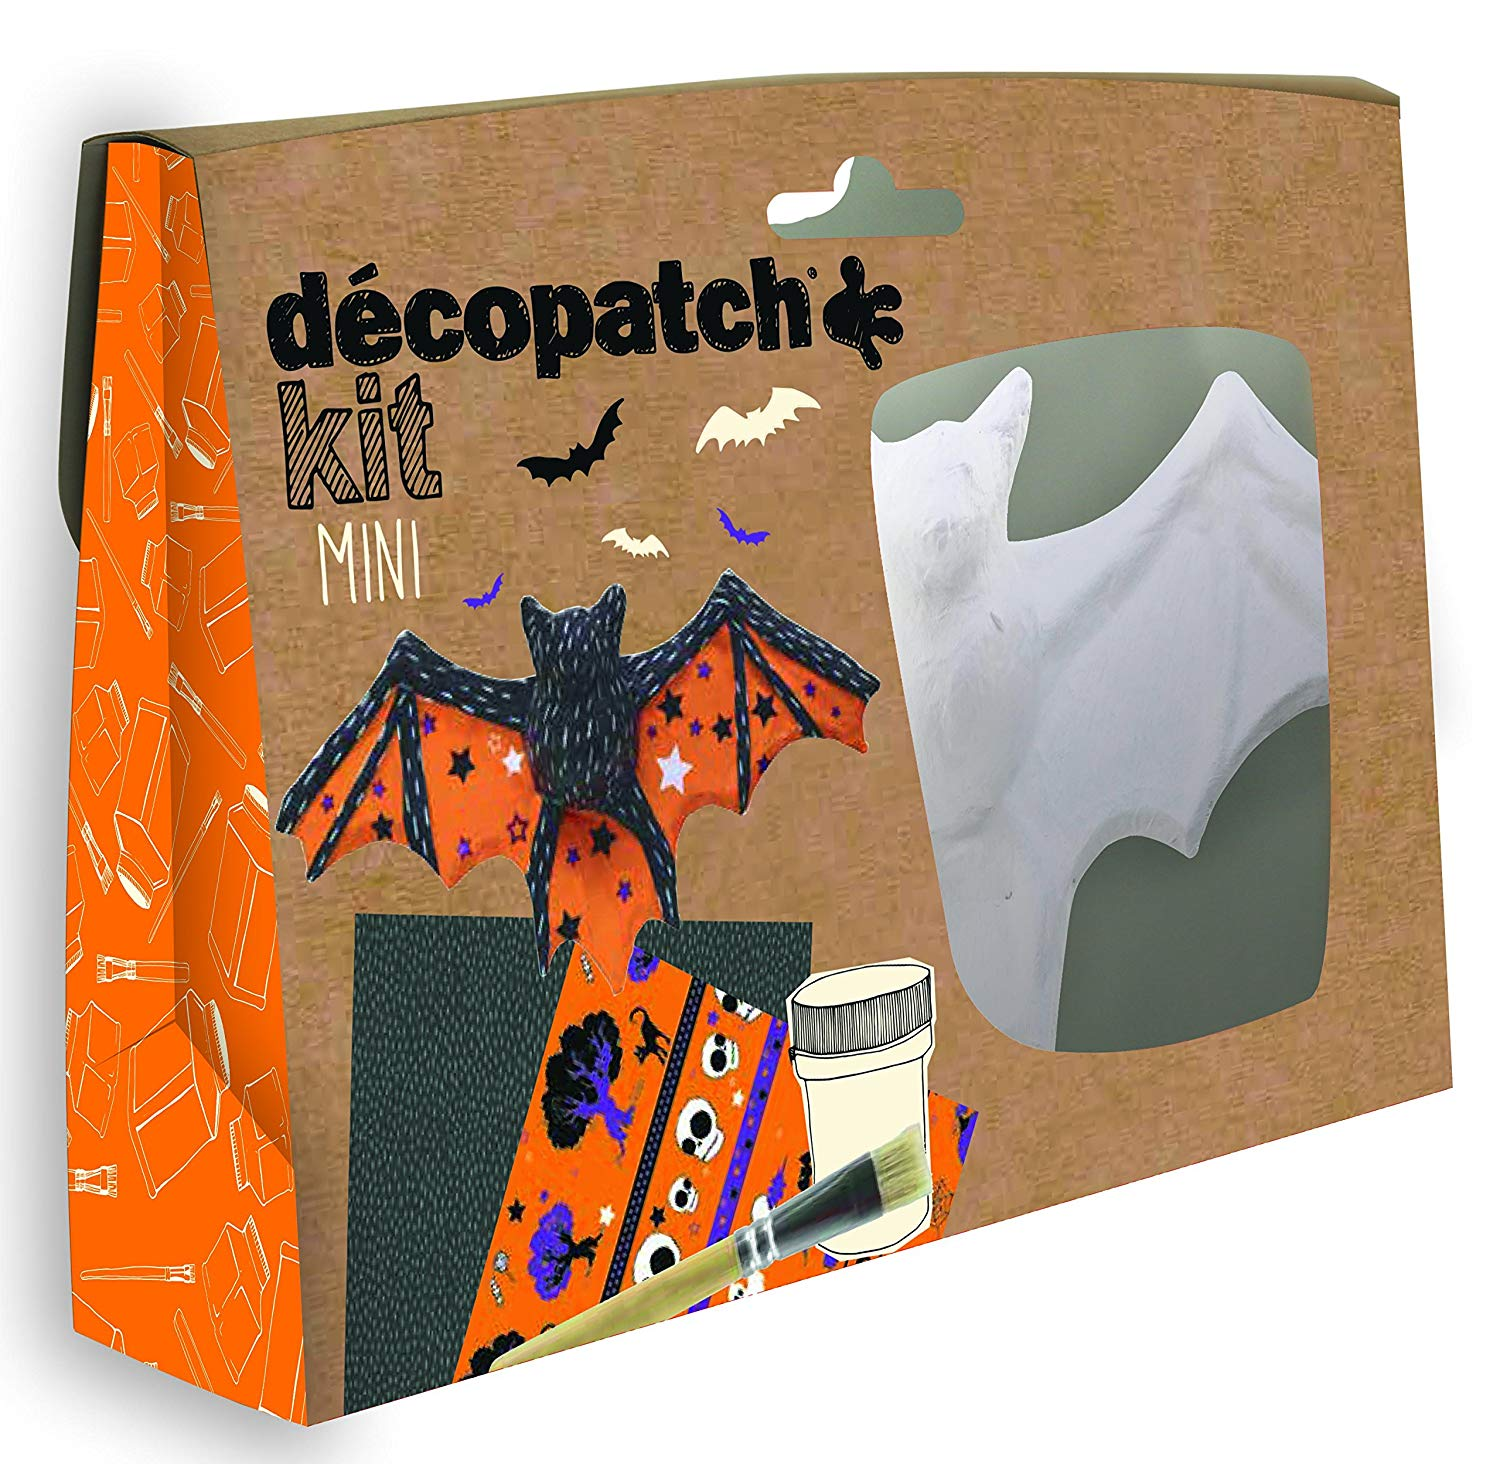 Vorschau: Décopatch Bastel Set Pappmaché Mini Fledermaus (ideal für Helloween u. Kinder, 19 x 13,5 x 3,5 cm) o